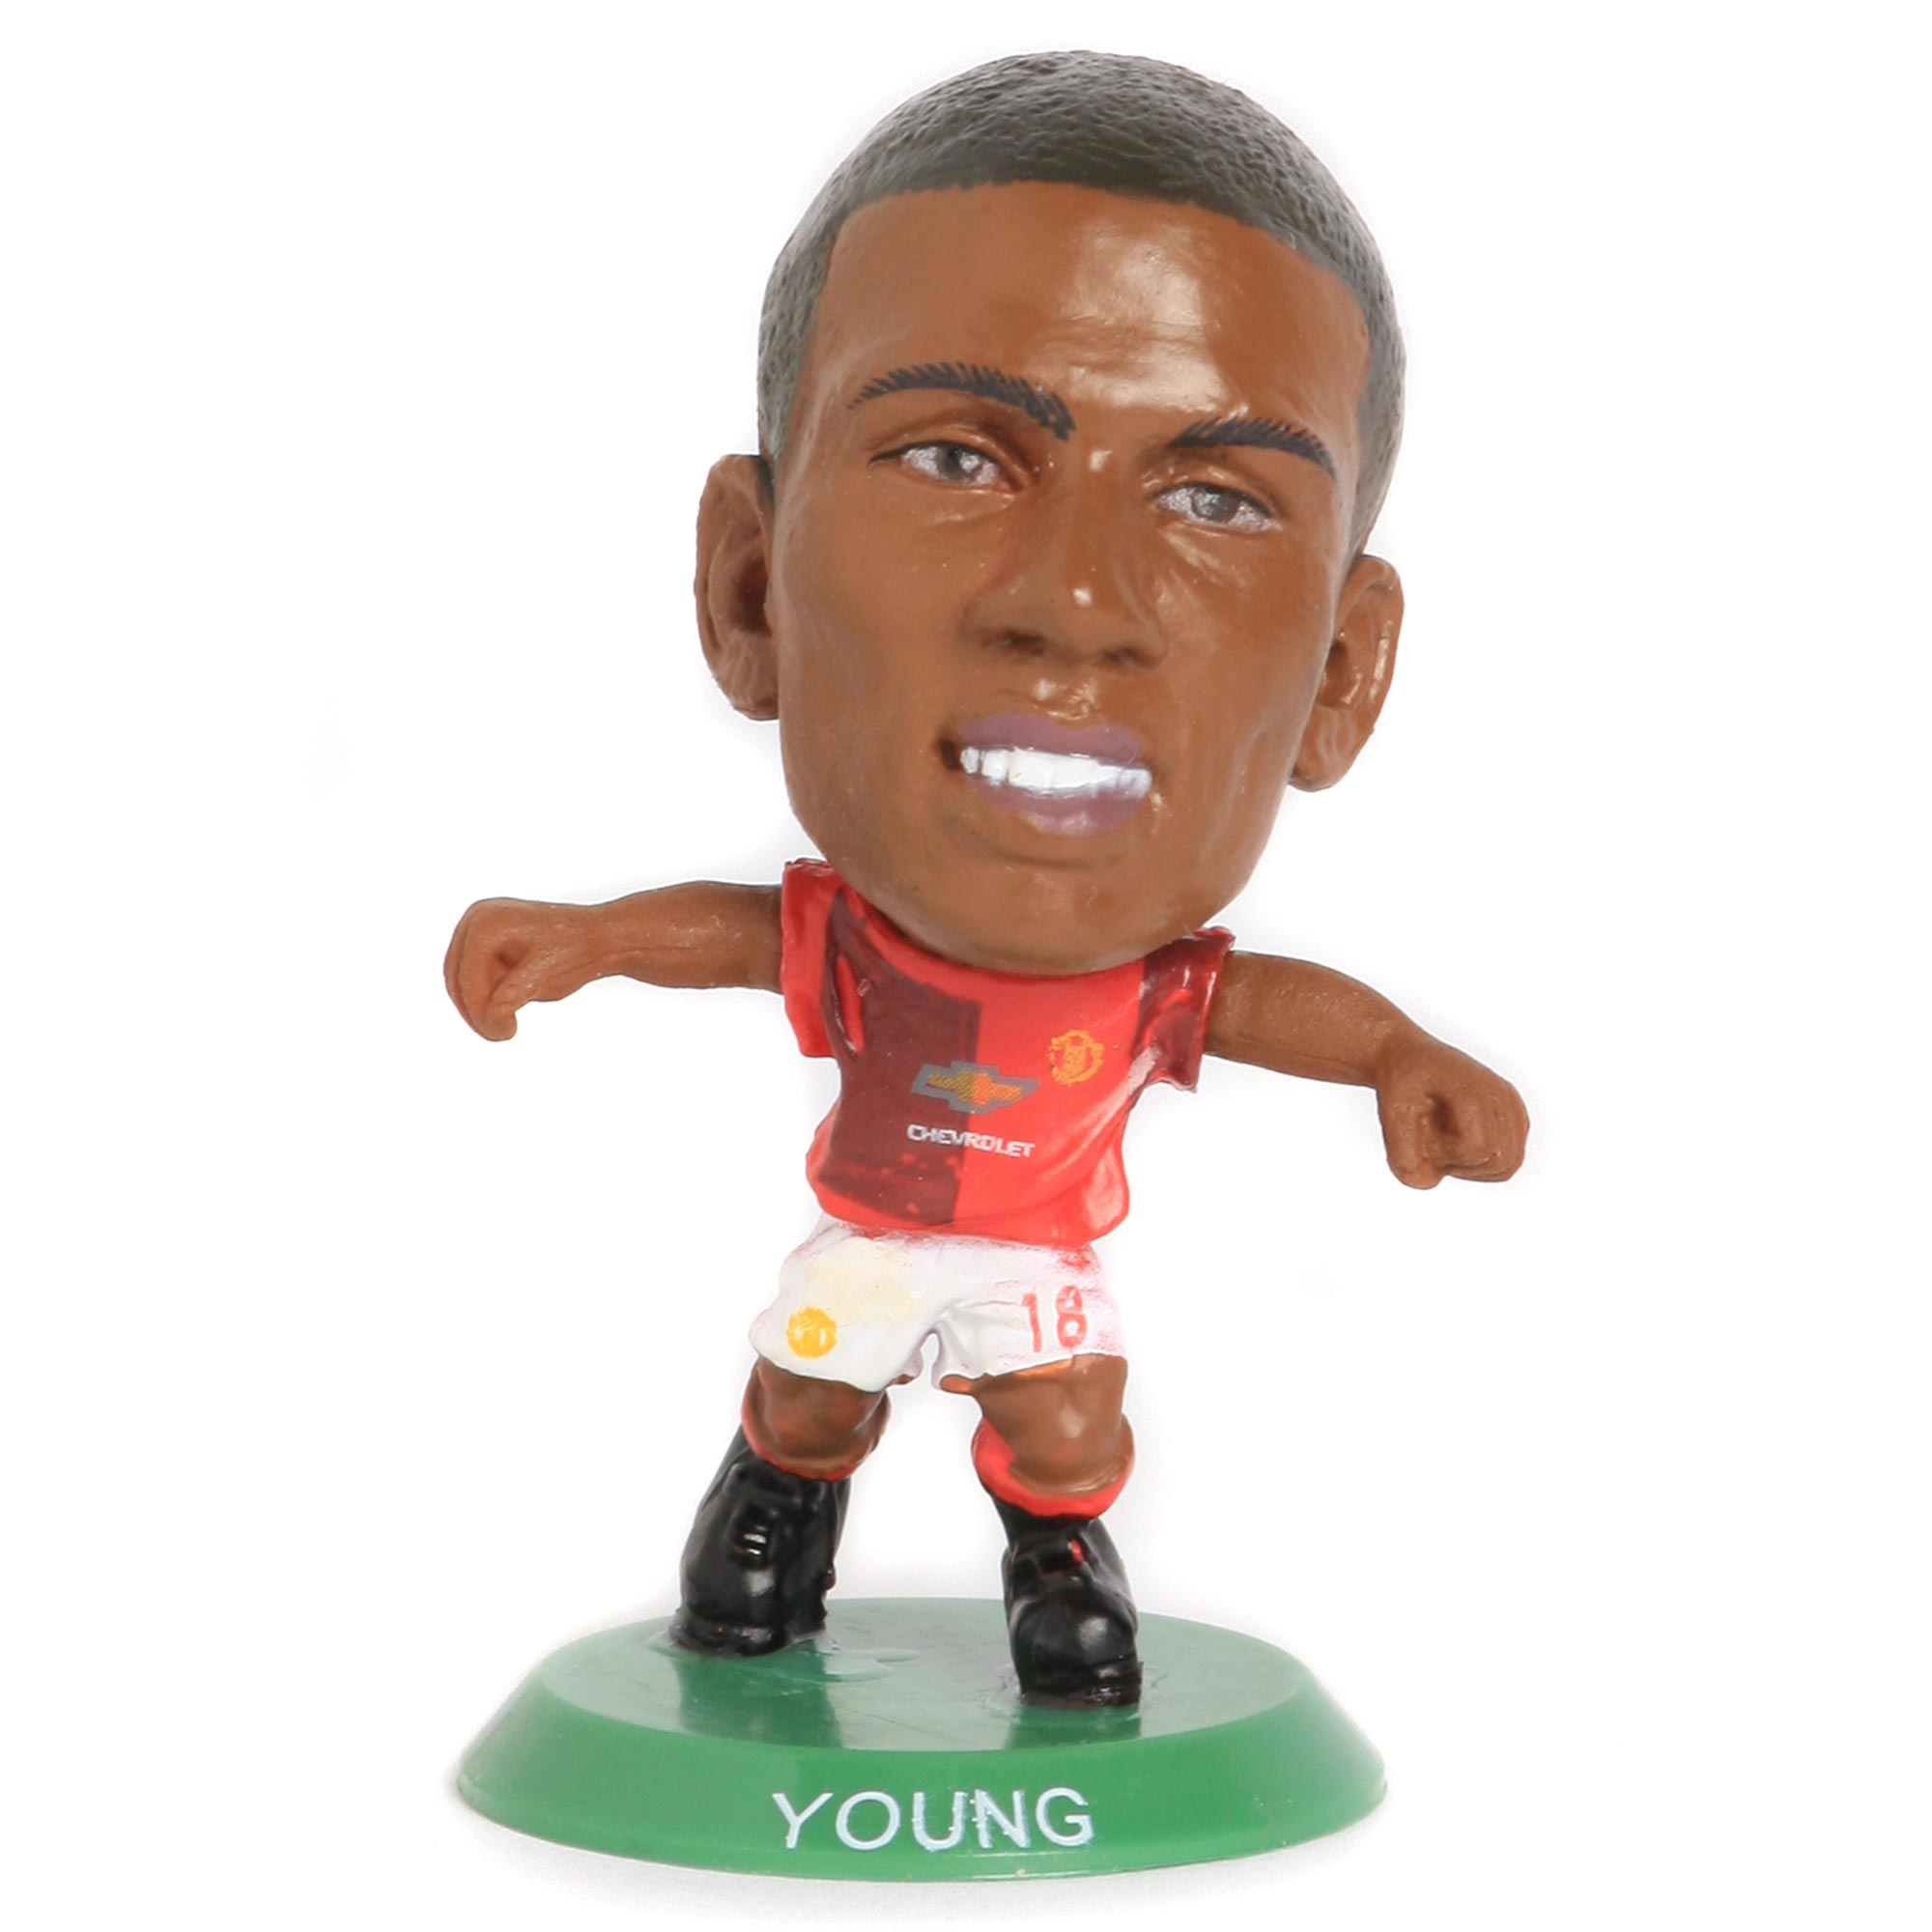 Manchester United 2017 Young SoccerStarz